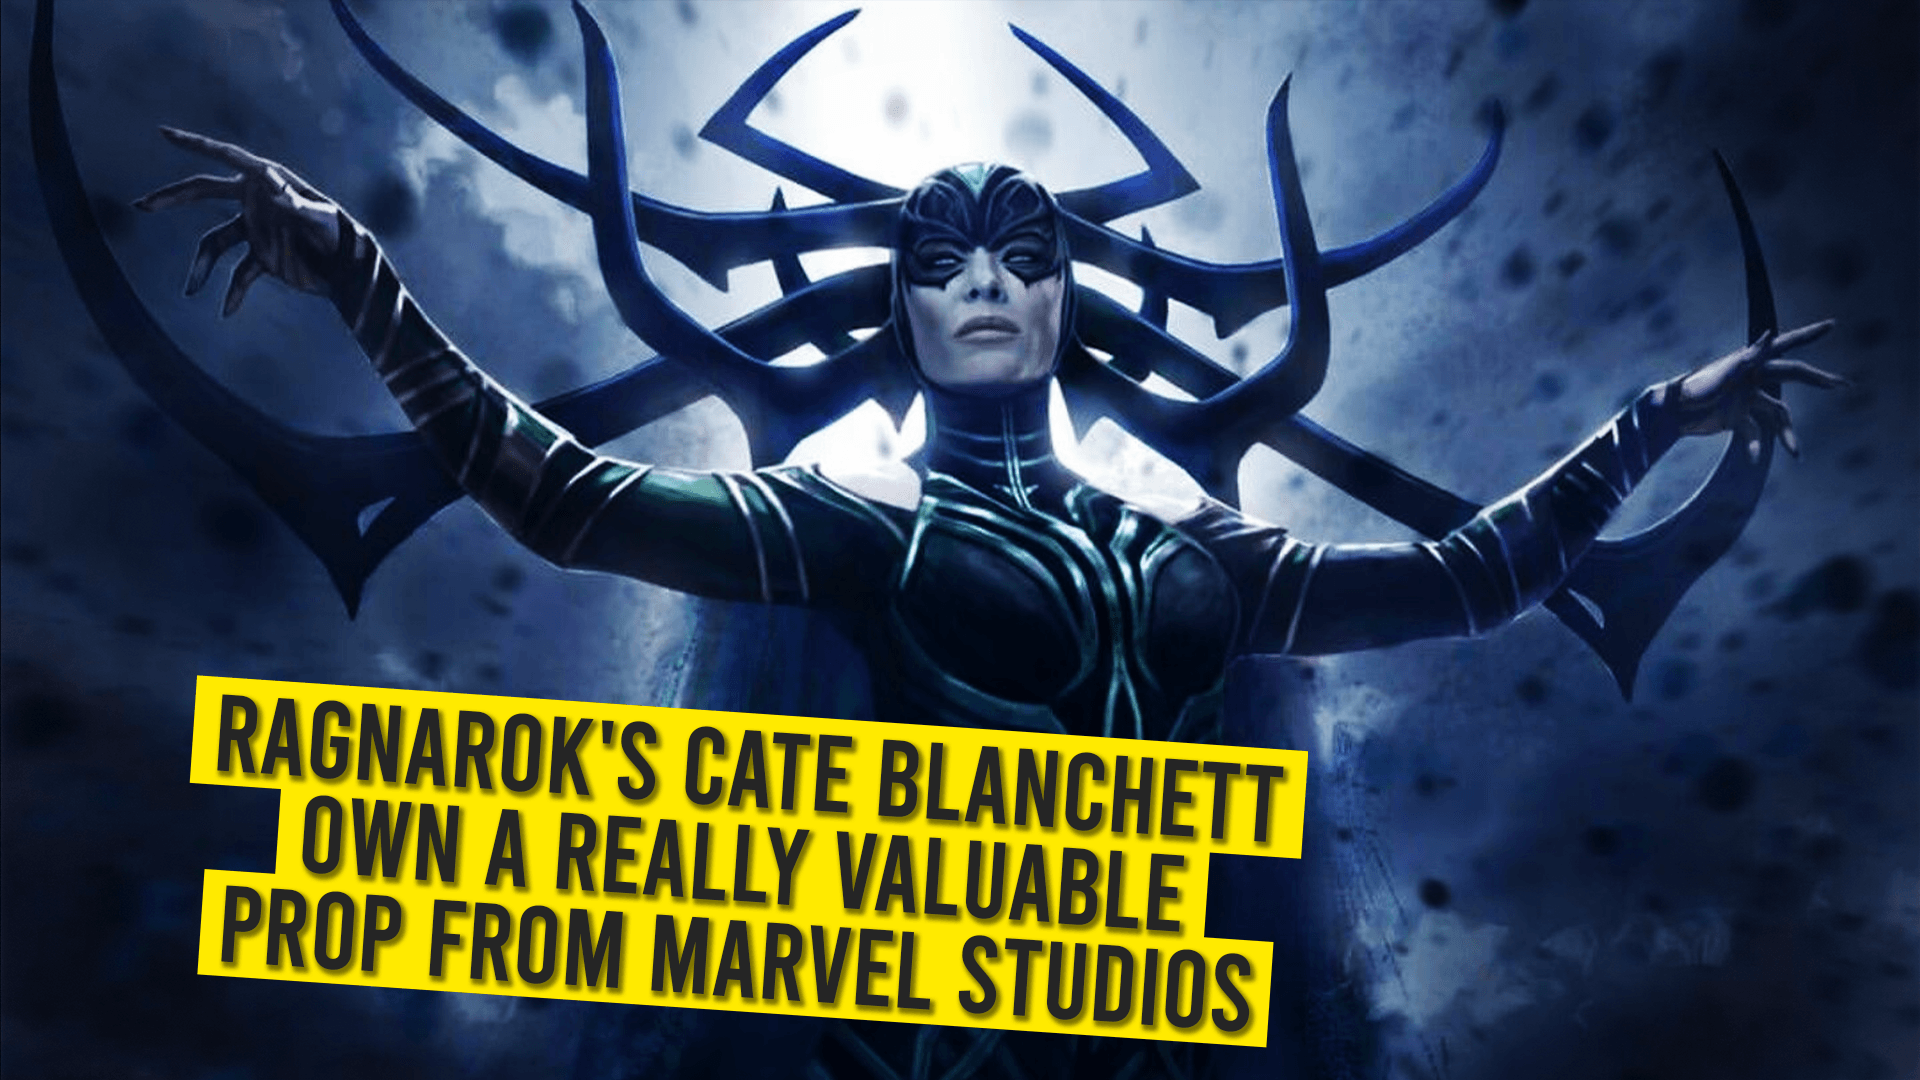 Ragnarok's Cate Blanchett Own A Really Valuable Prop From Marvel Studios